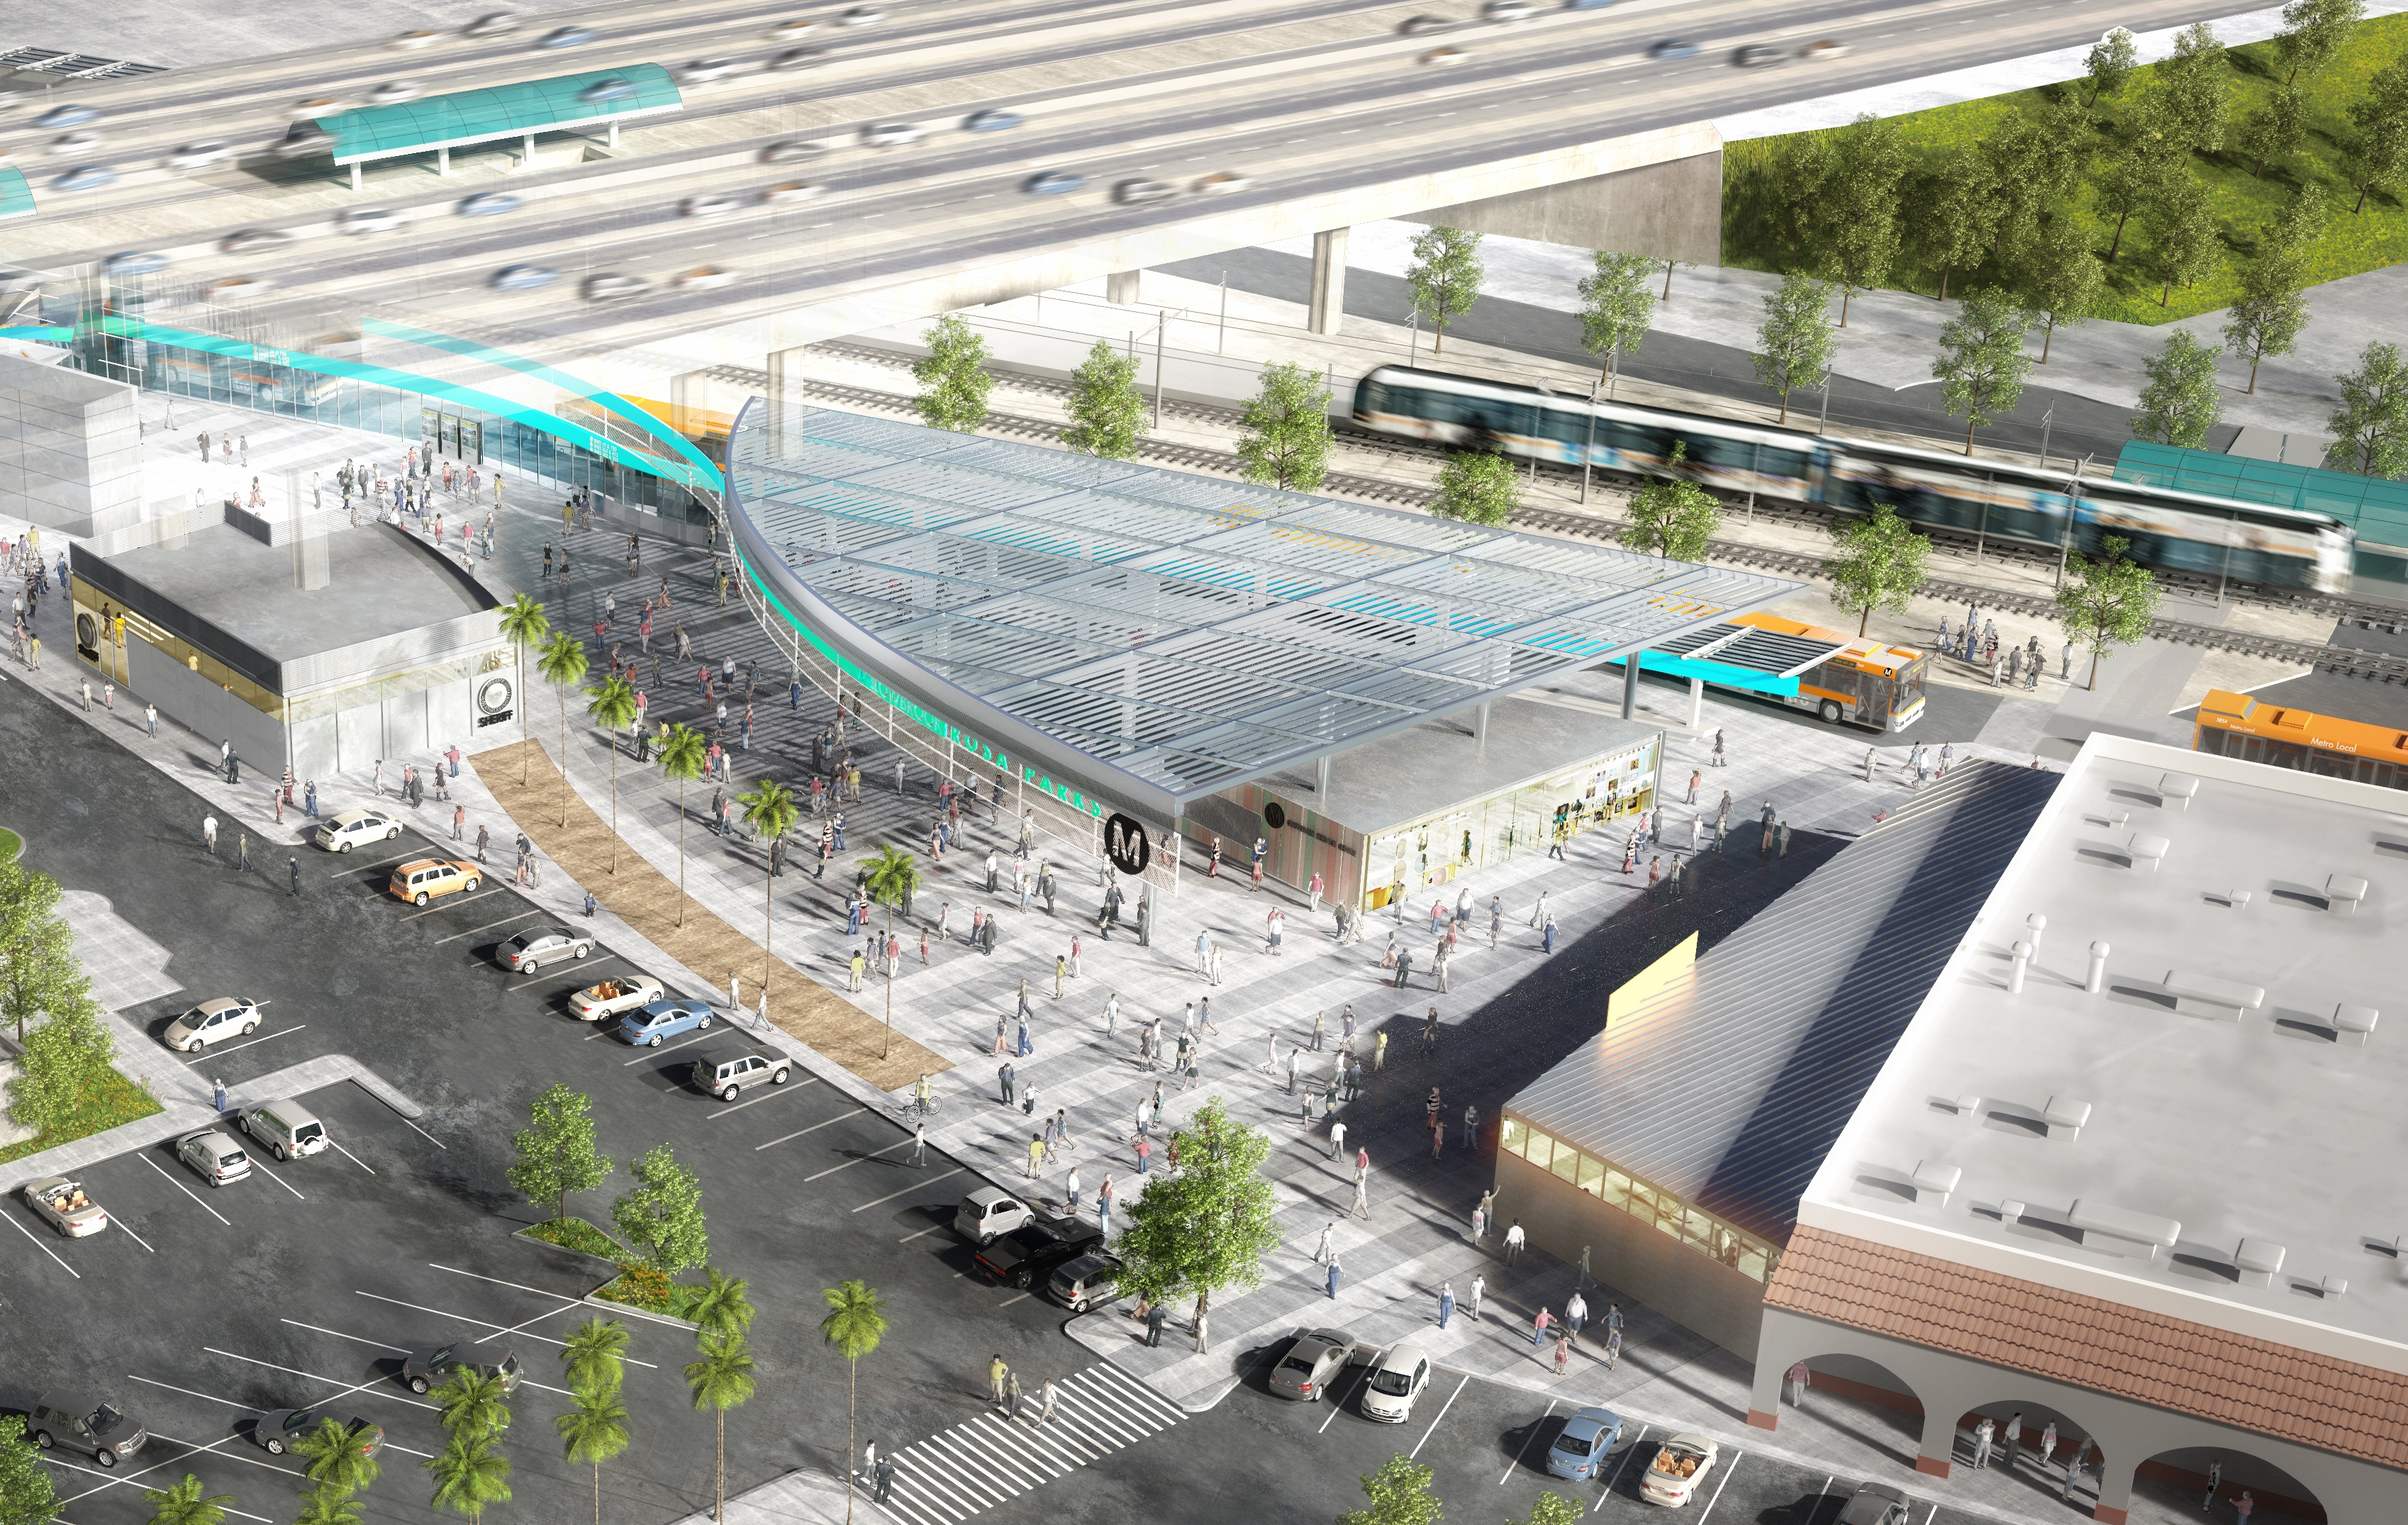 A mock-up of the new station shows a cleaner, better-lit, and more welcoming station. Photo: LA Metro